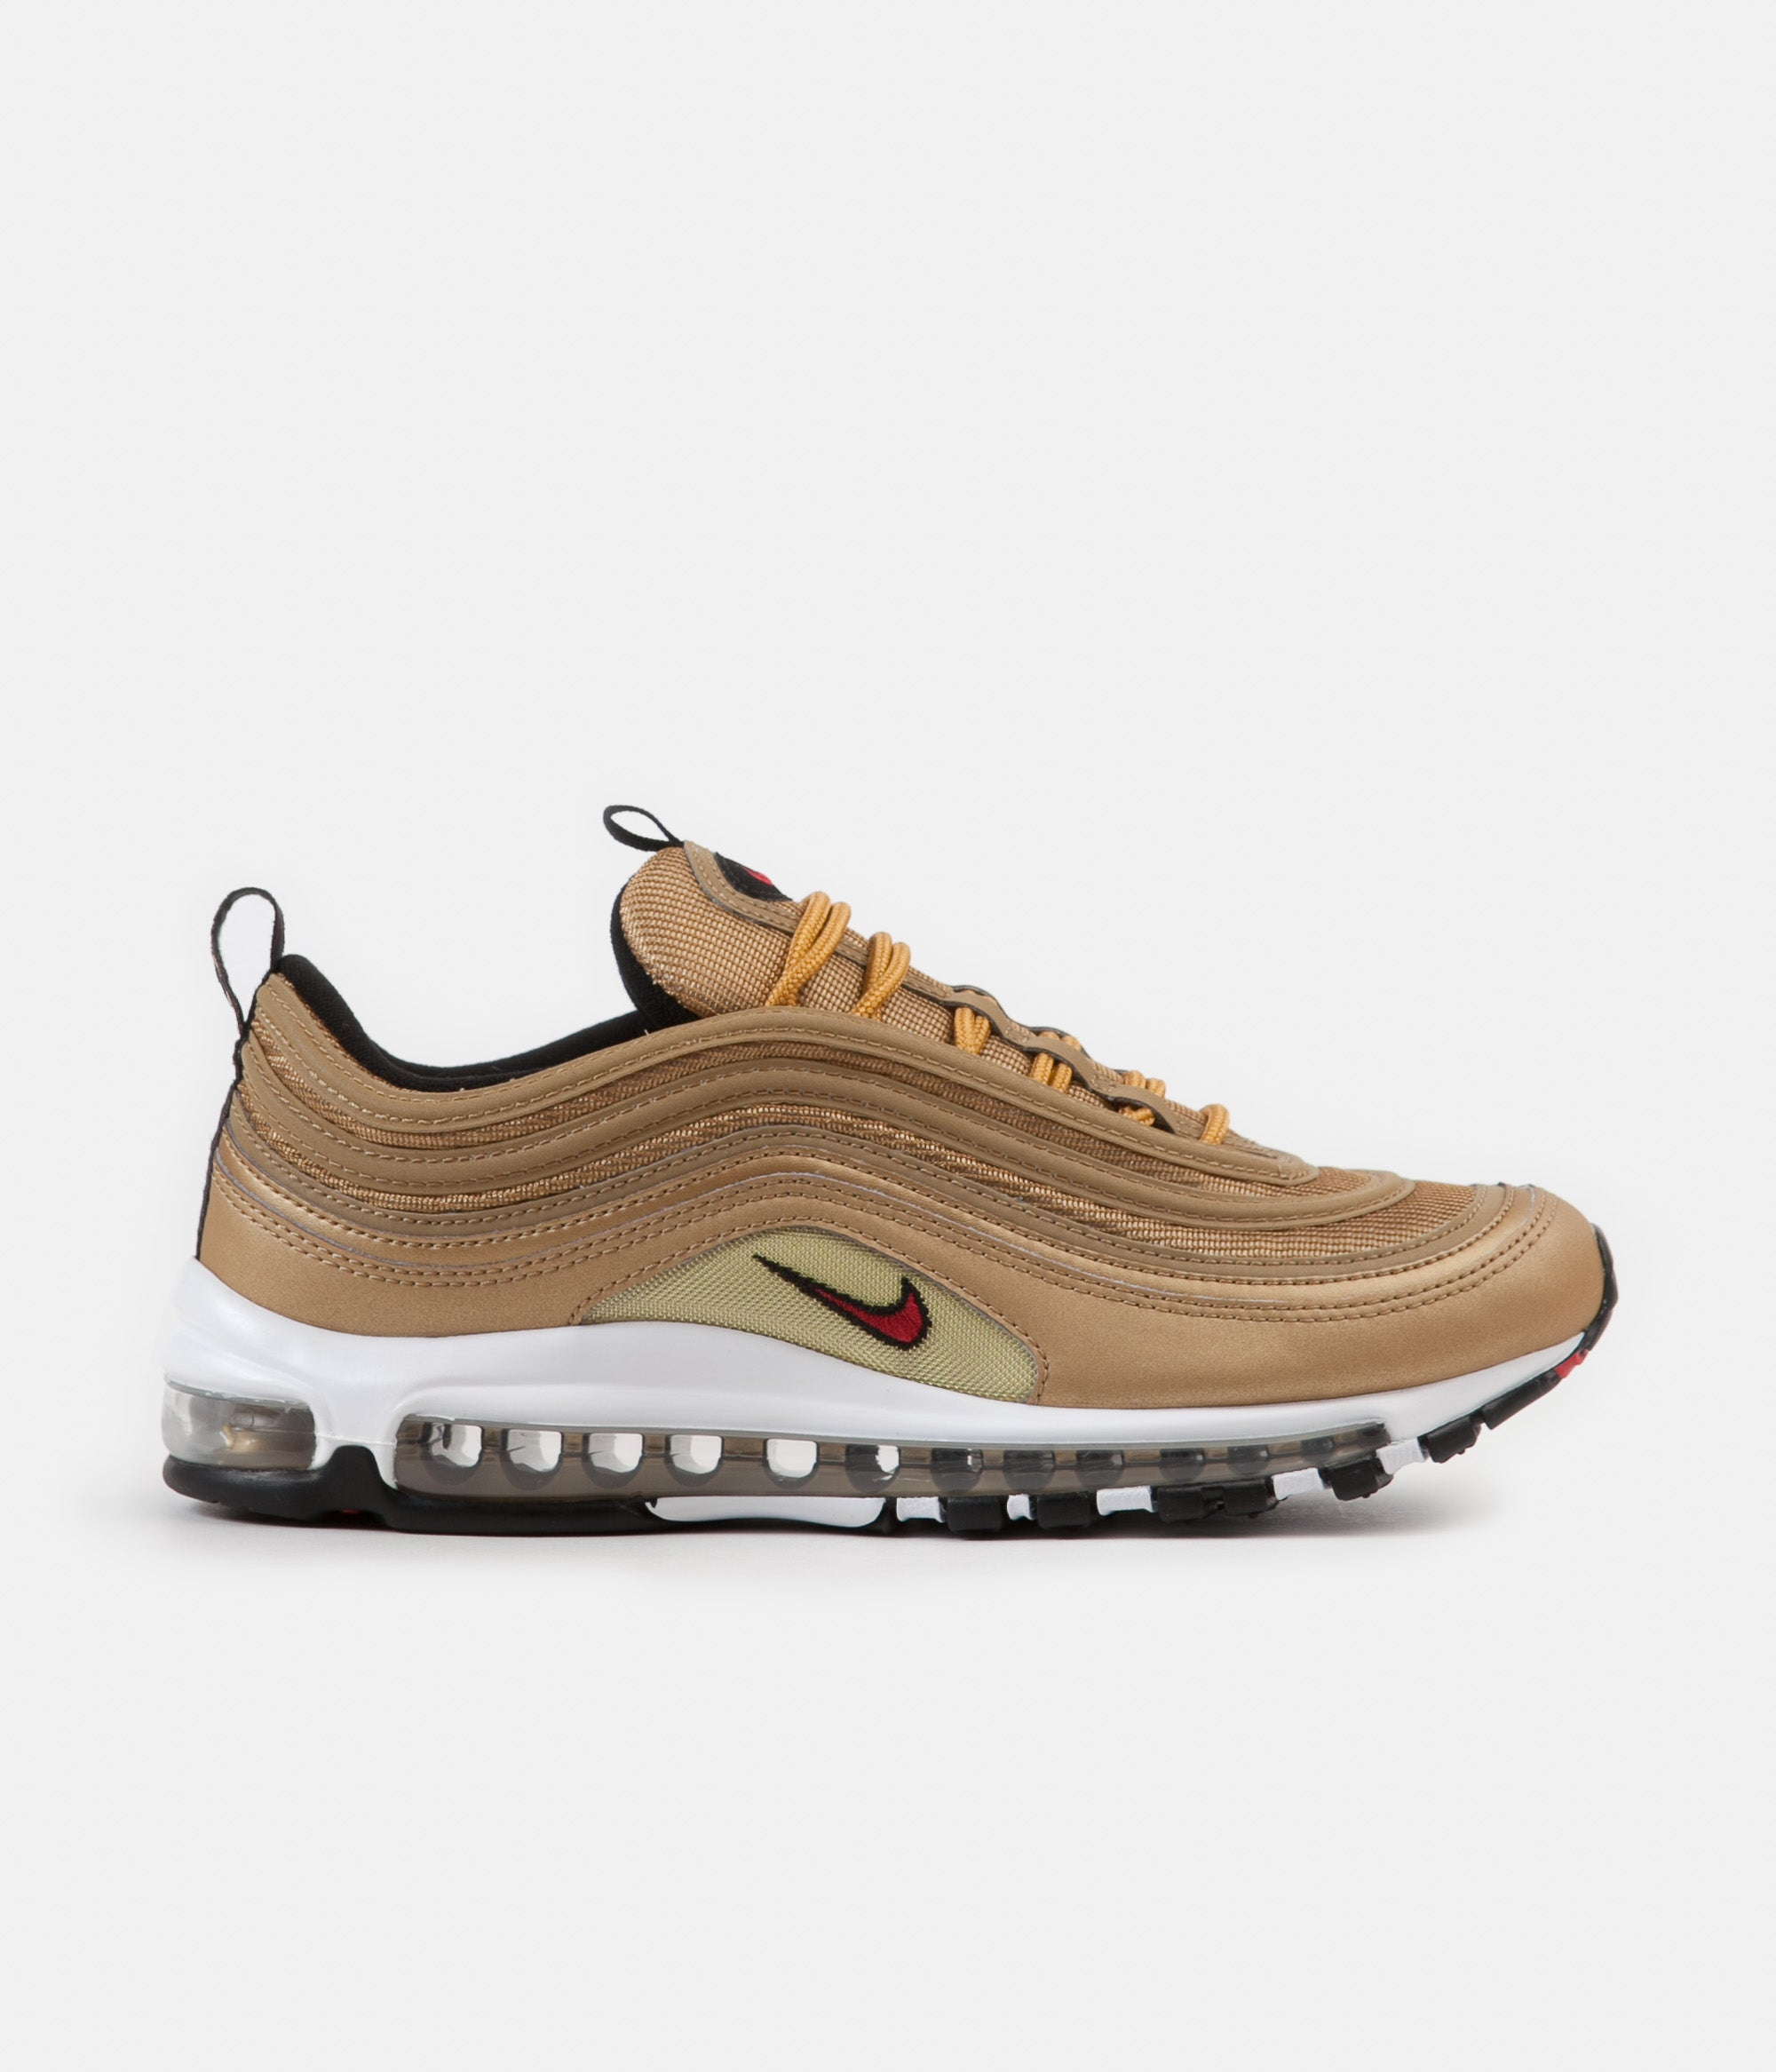 211427aa84 ... cheap nike air max 97 og shoes metallic gold varsity red white black  9475c 4acfb